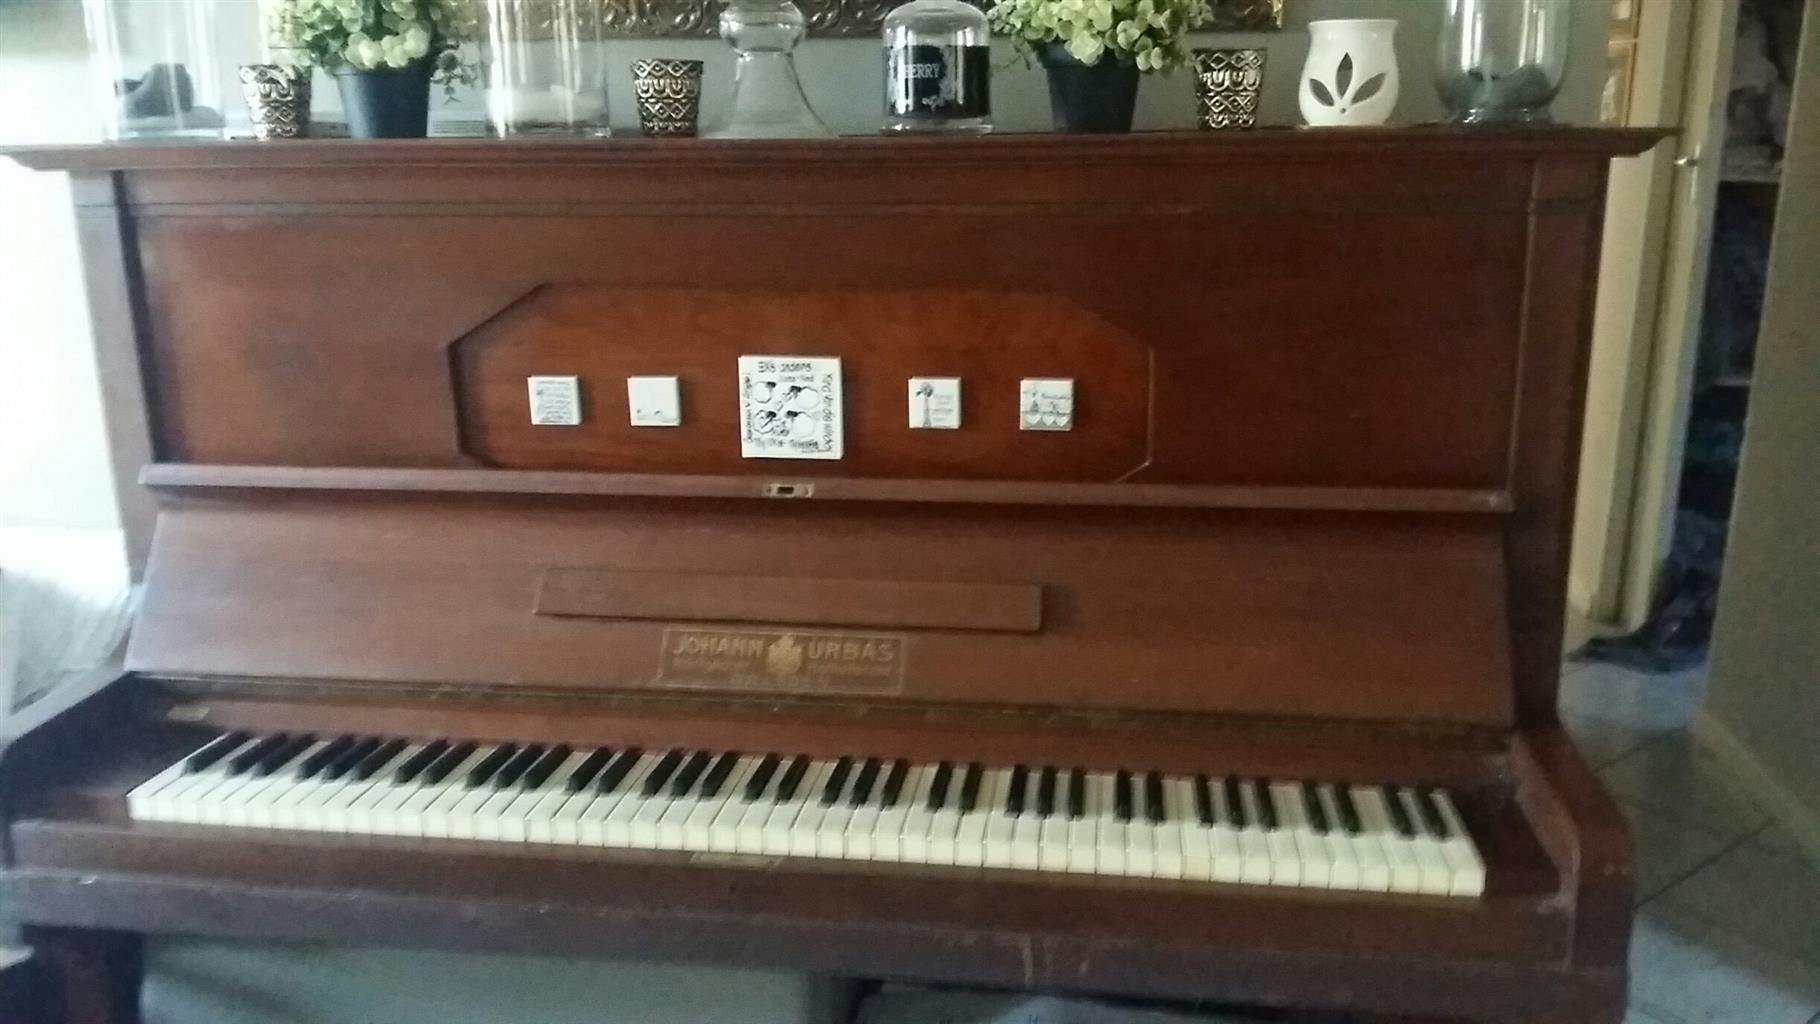 Classic vintage piano, from Dresden, Germany. Opens up for projection.